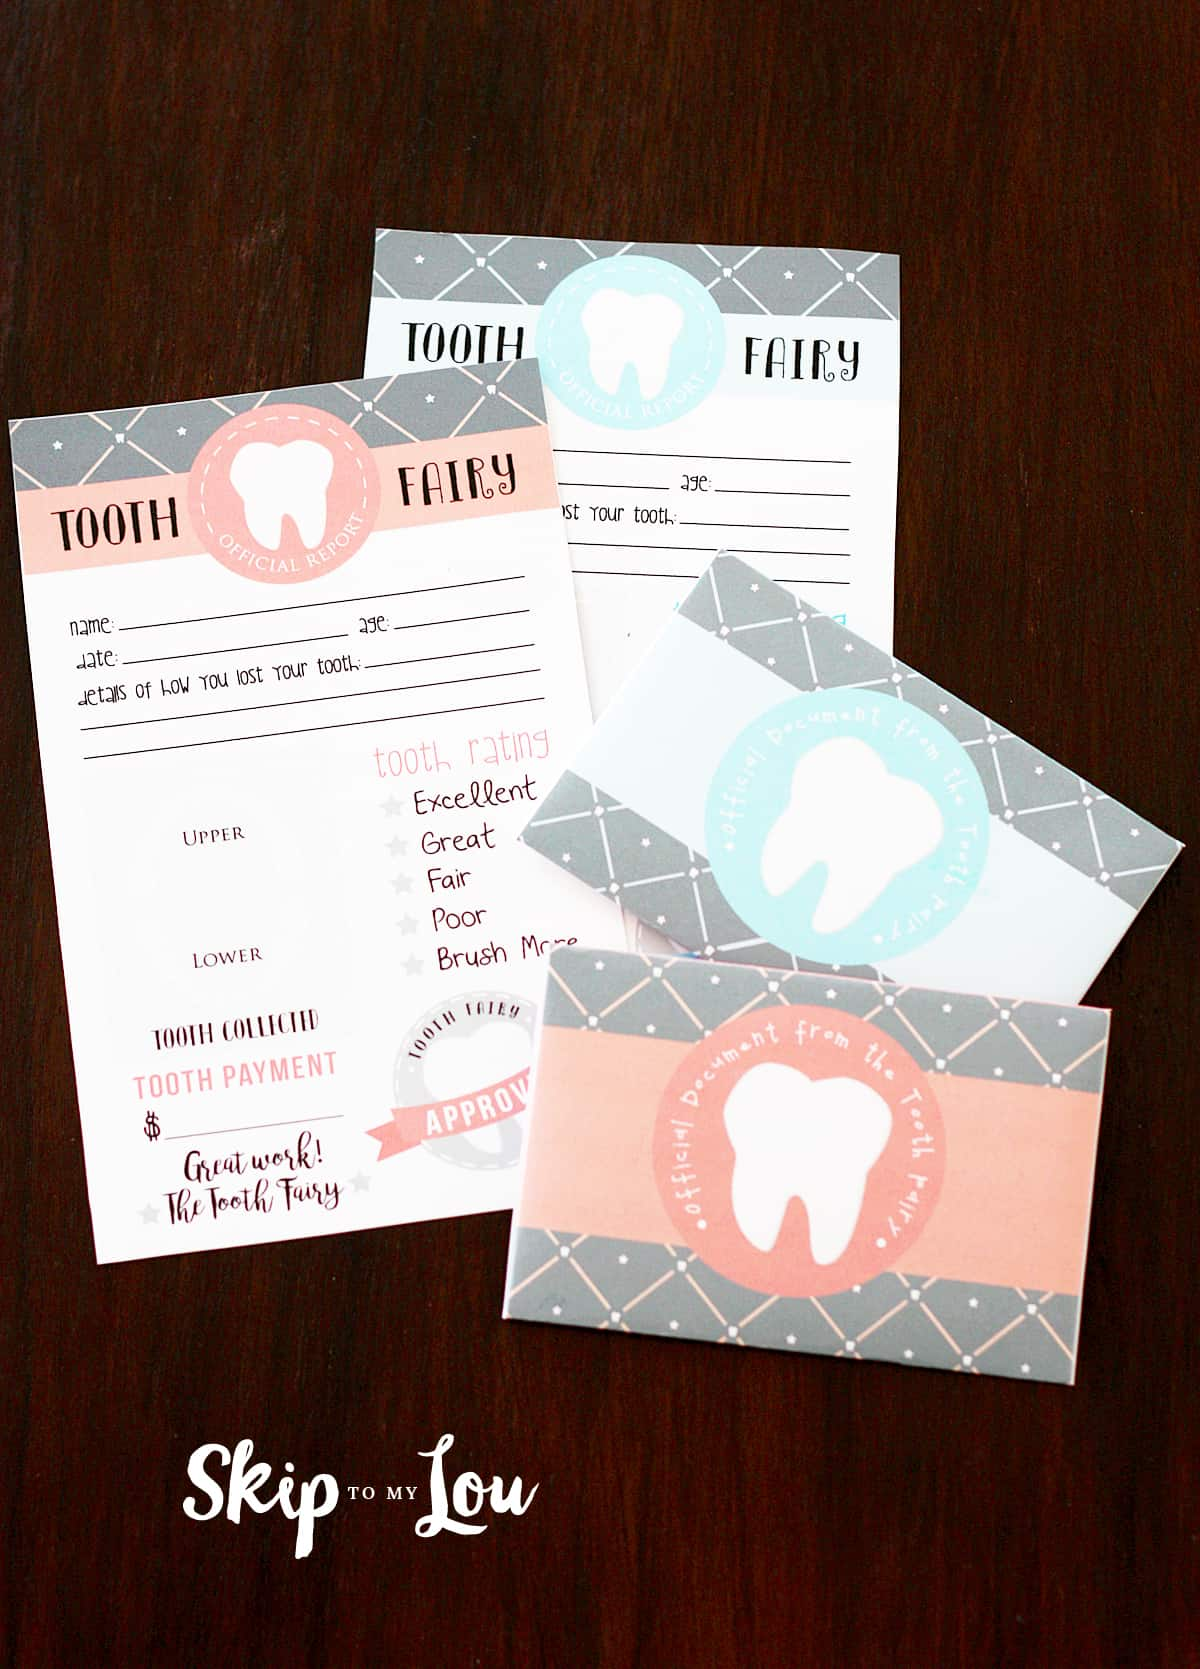 image about Free Printable Tooth Fairy Letters referred to as Totally free Printable Enamel Fairy Letter with matching enevelopes